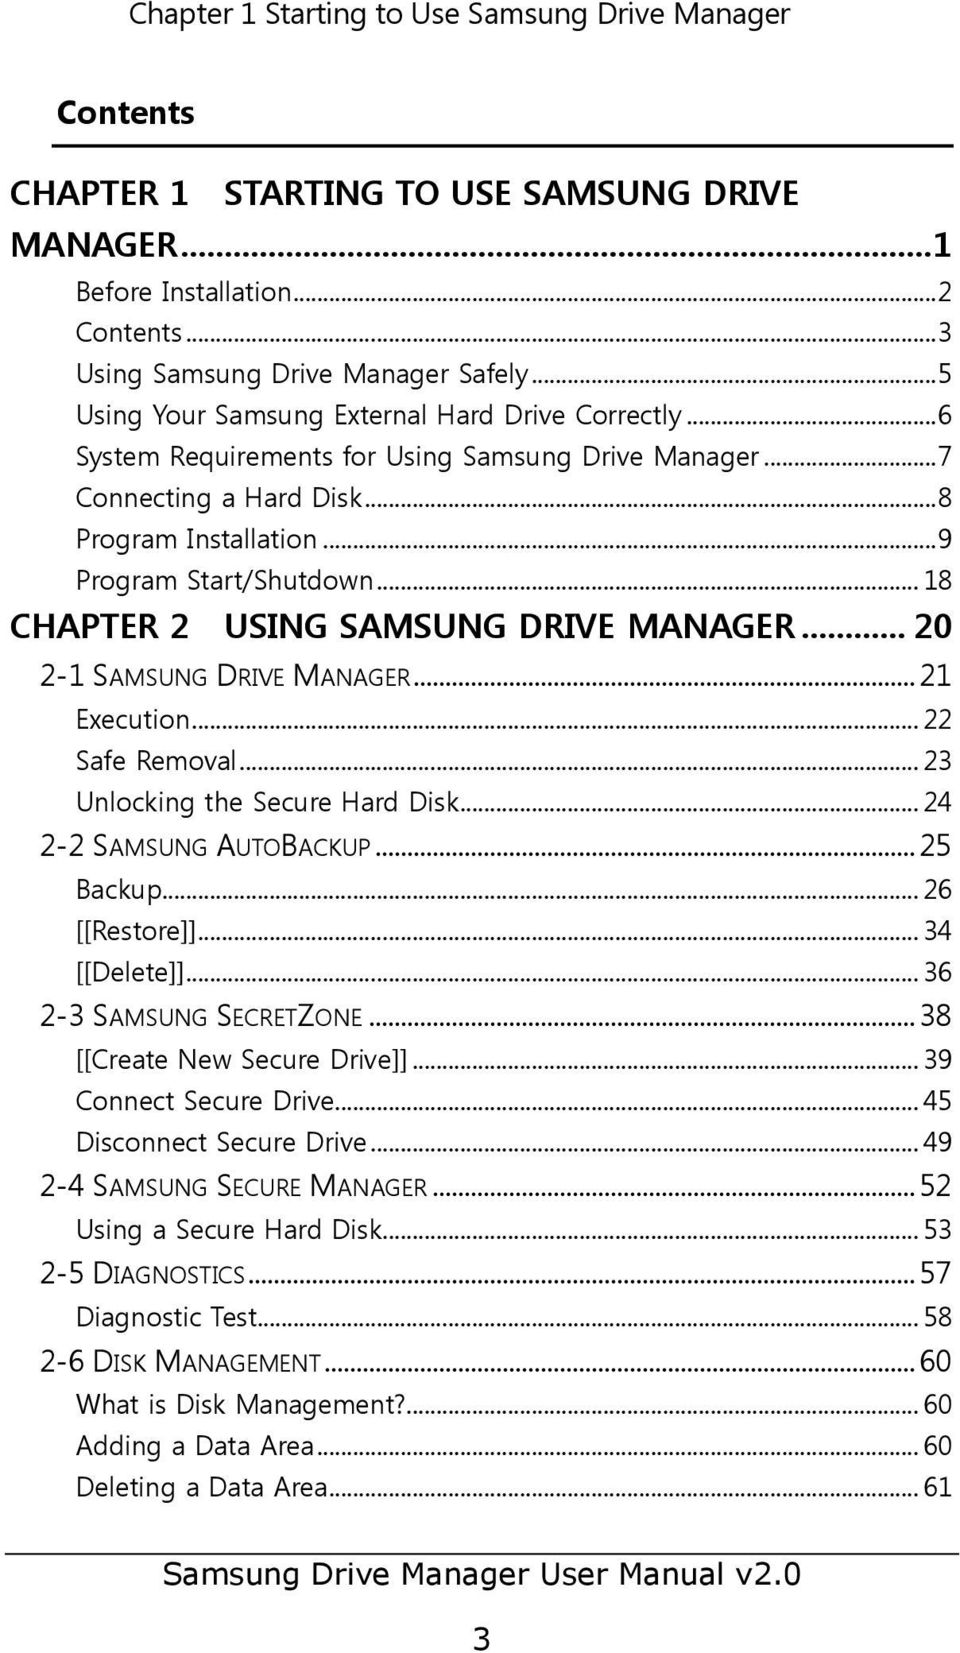 .. 18 CHAPTER 2 USING SAMSUNG DRIVE MANAGER... 20 2-1 SAMSUNG DRIVE MANAGER... 21 Execution... 22 Safe Removal... 23 Unlocking the Secure Hard Disk... 24 2-2 SAMSUNG AUTOBACKUP... 25 Backup.